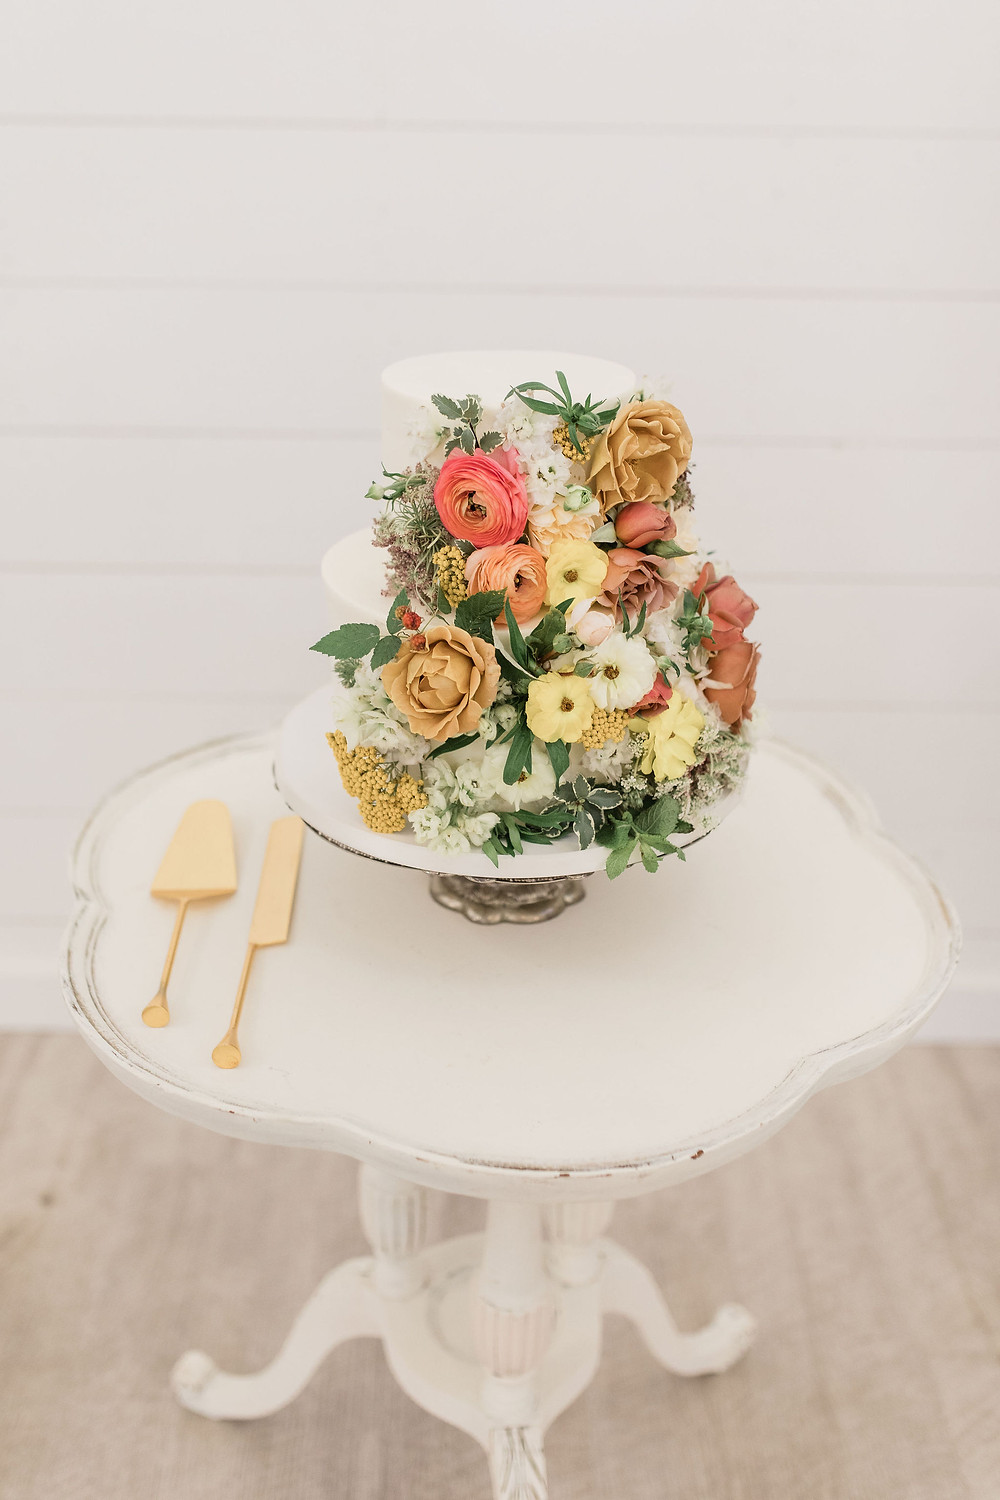 Simple white tables are perfect for the intimate cake; this one styled with all the flowers!